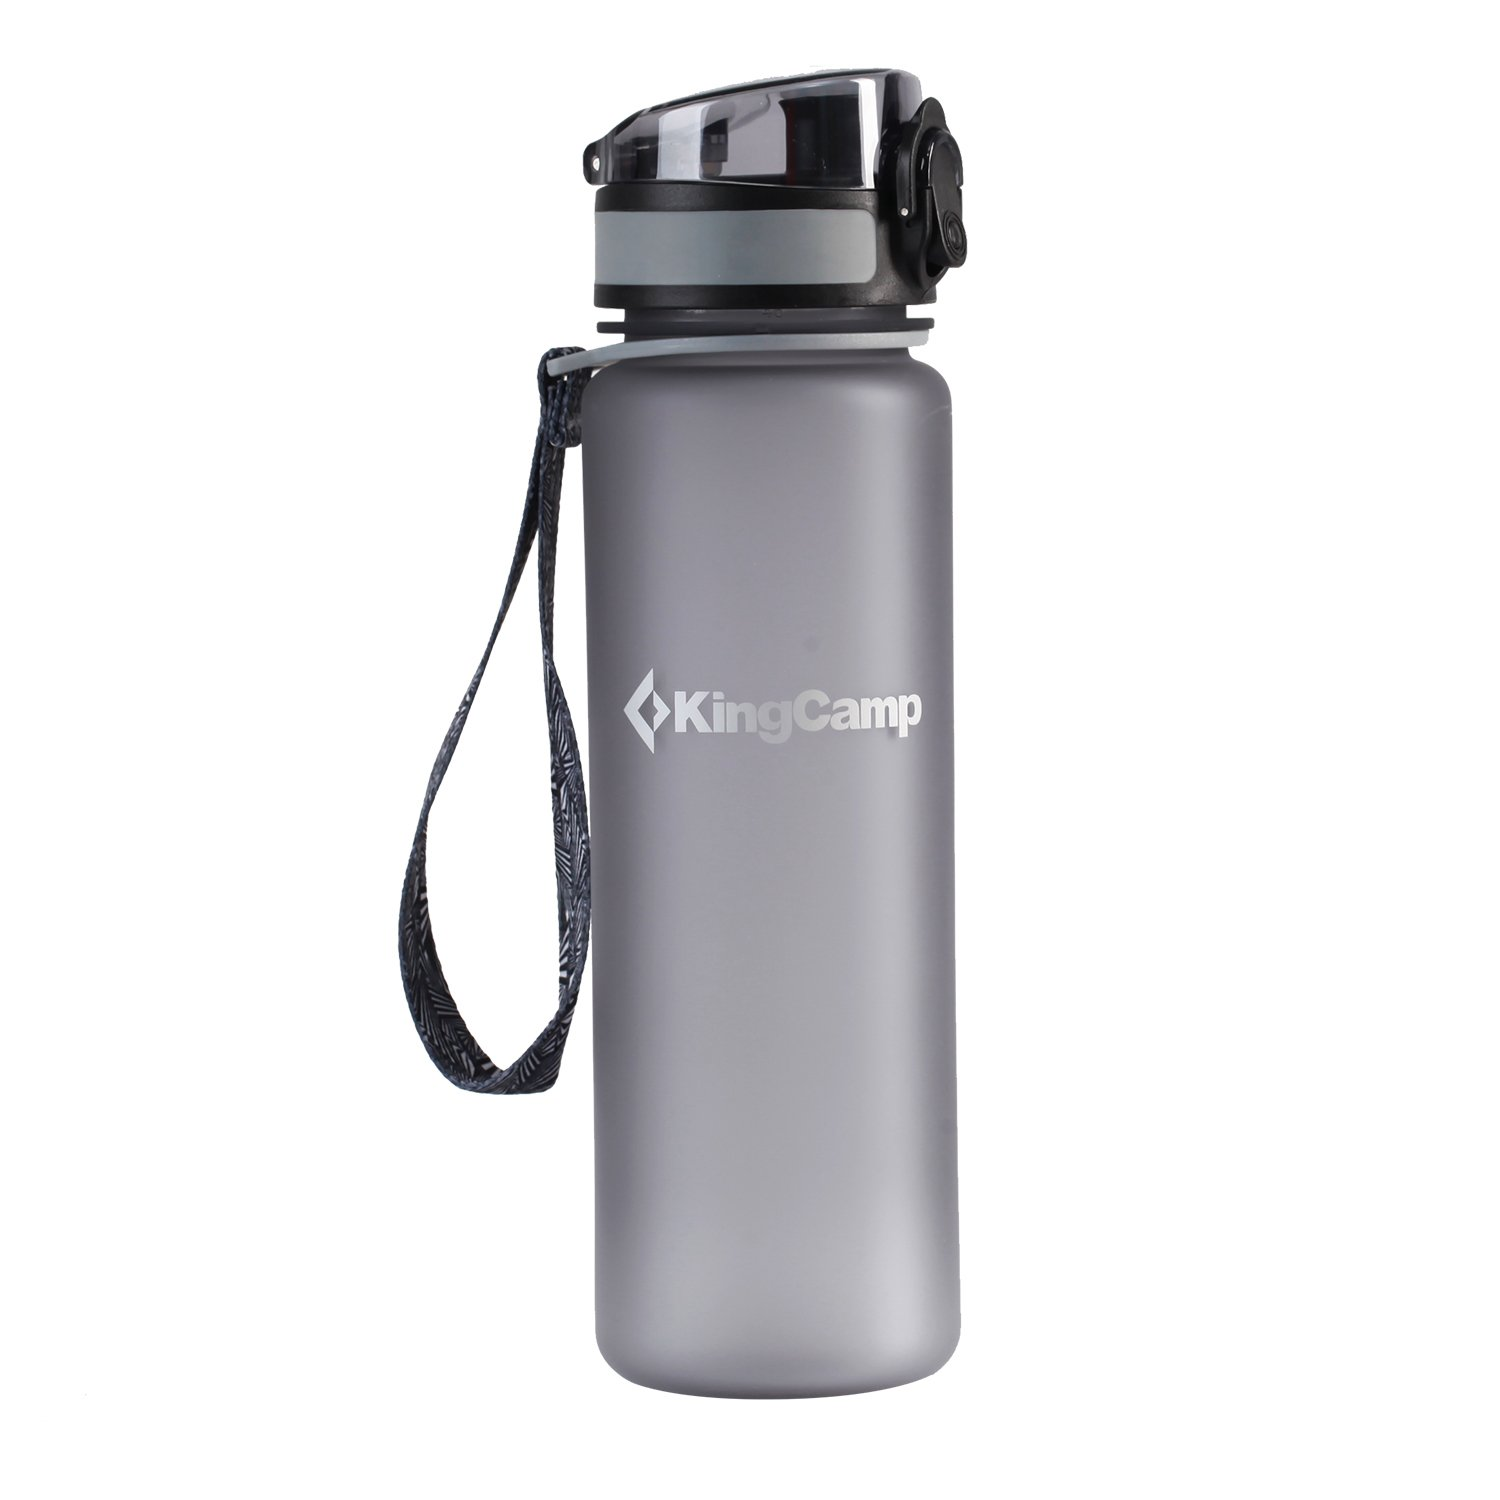 KingCamp 17.7oz / 500ml Middle Grey TRITAN Wide Mouth Sports Water Bottle with Snap Cap, BPA Free, Eco Friendly, Heat-resistant, Good for Kids